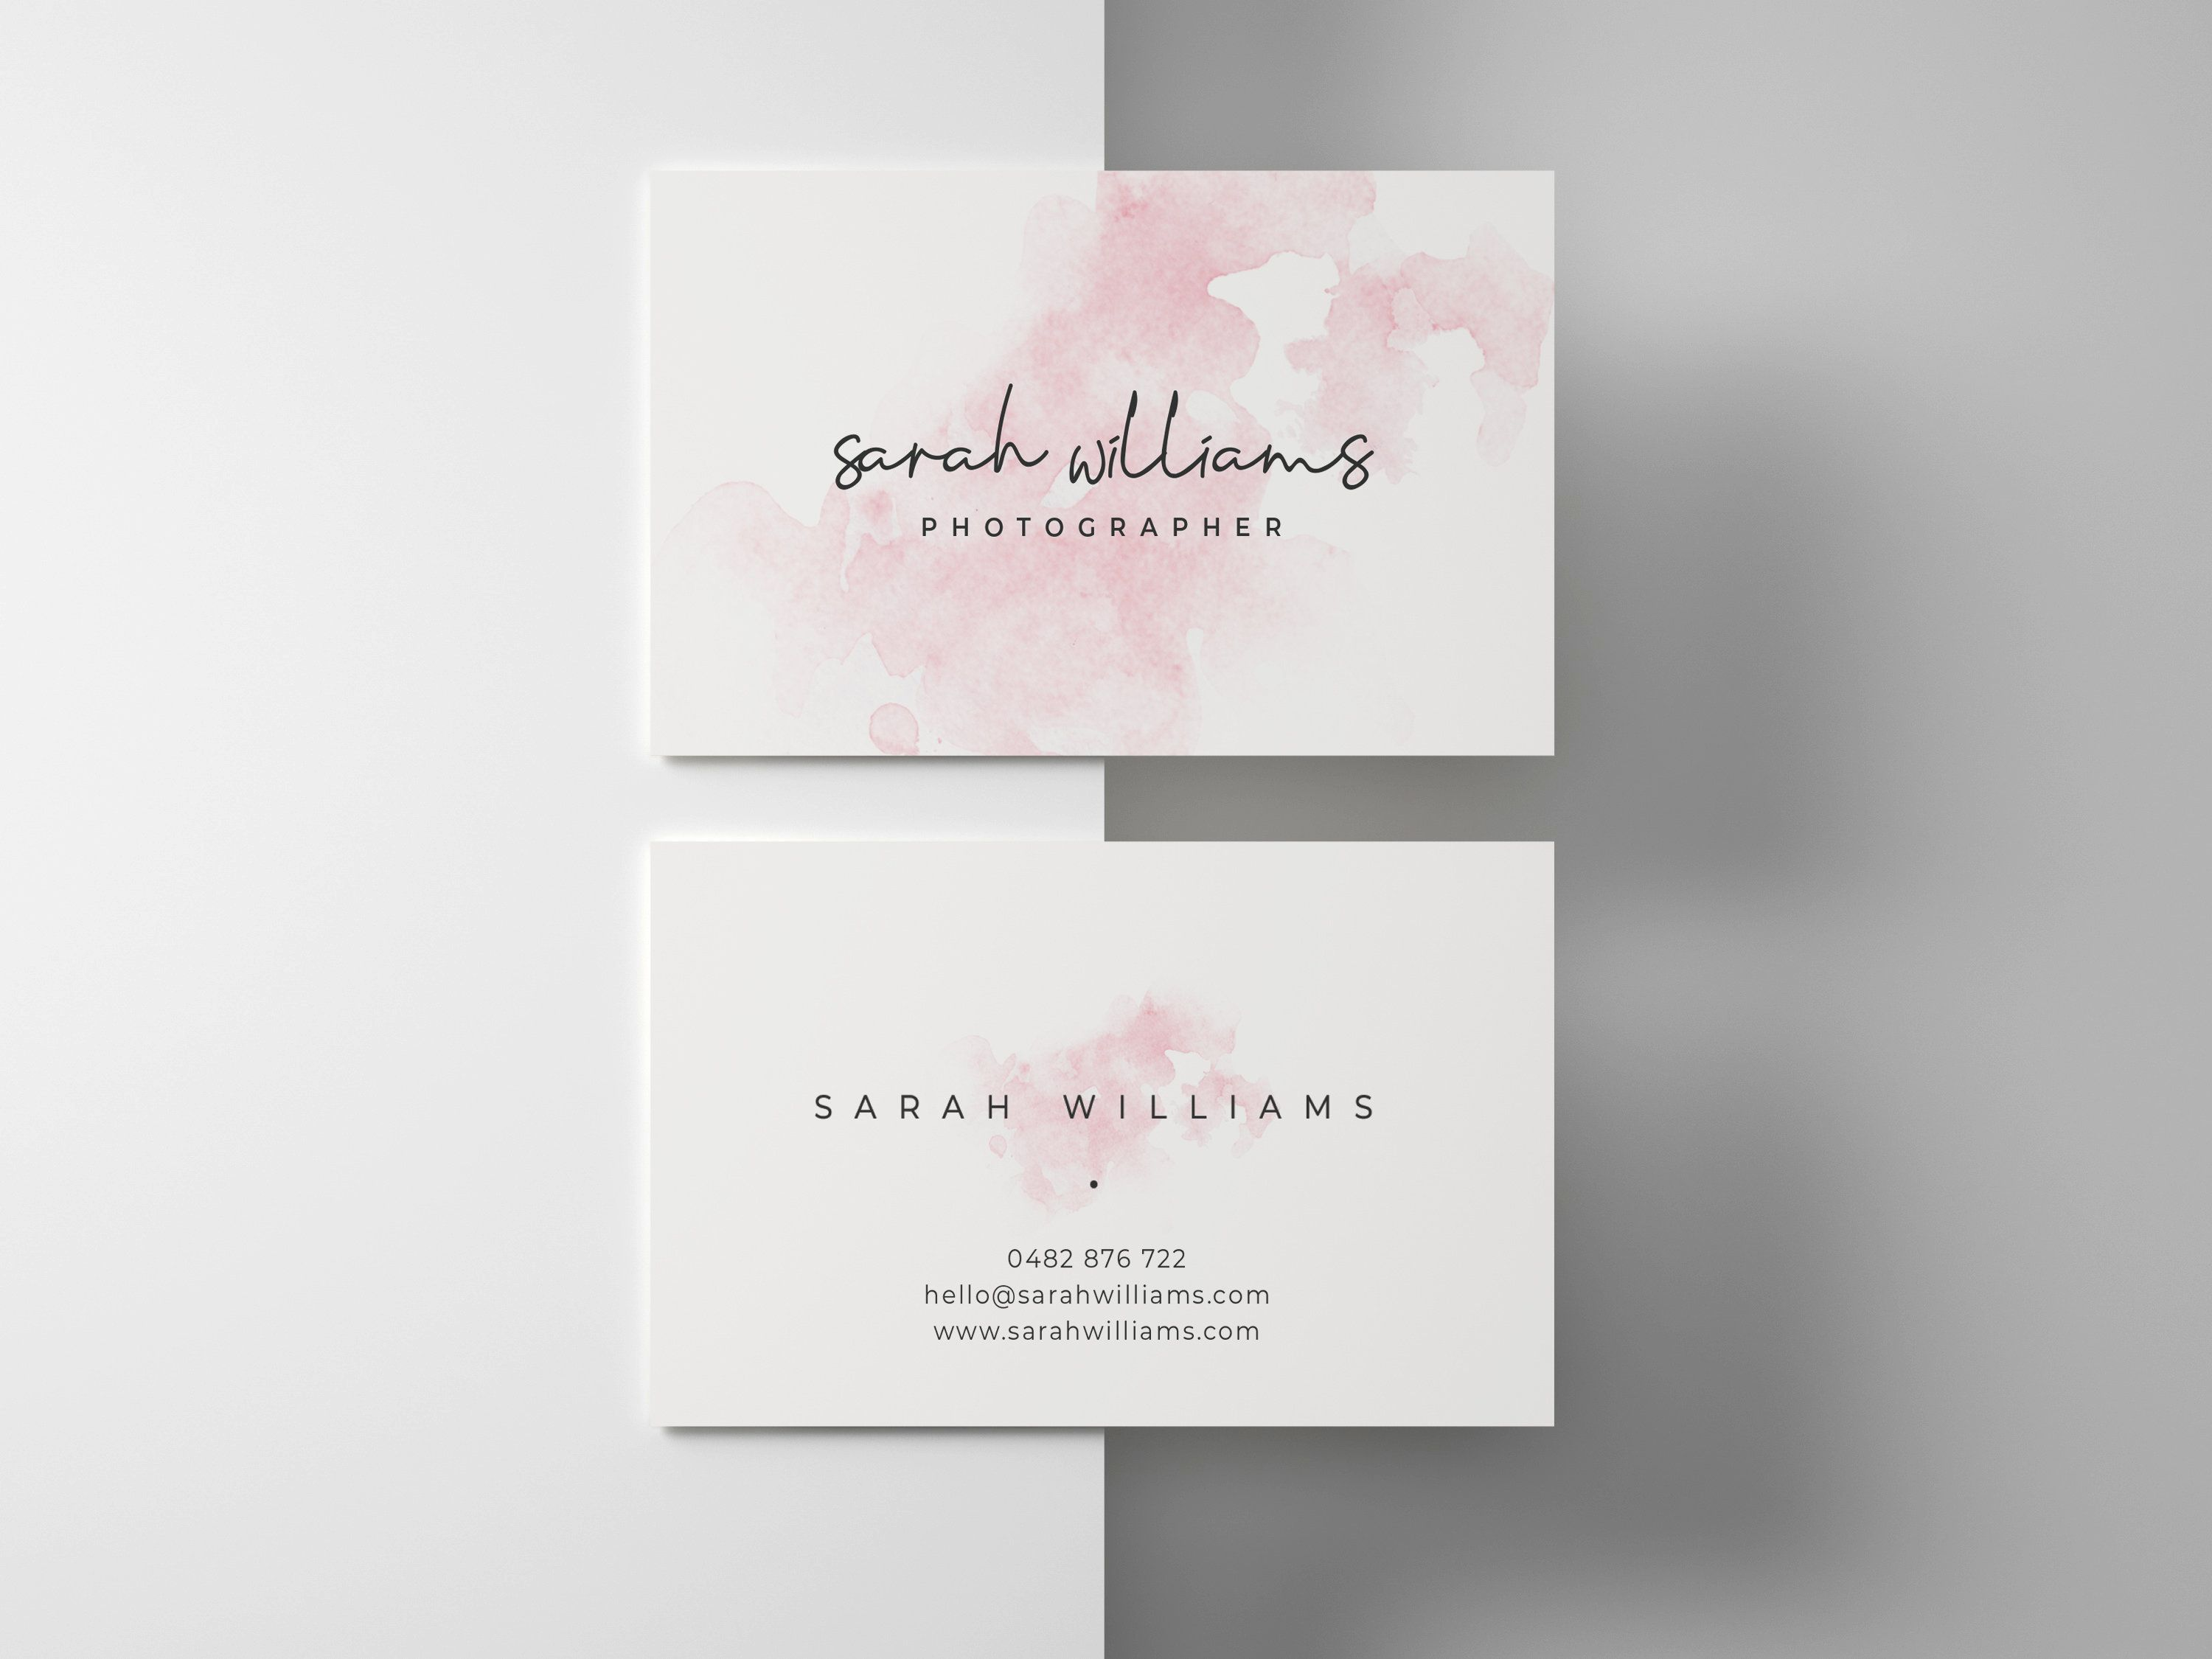 Business Cards Template Business Thank You Cards Thank You Etsy Salon Business Cards Artist Business Cards Watercolor Business Cards